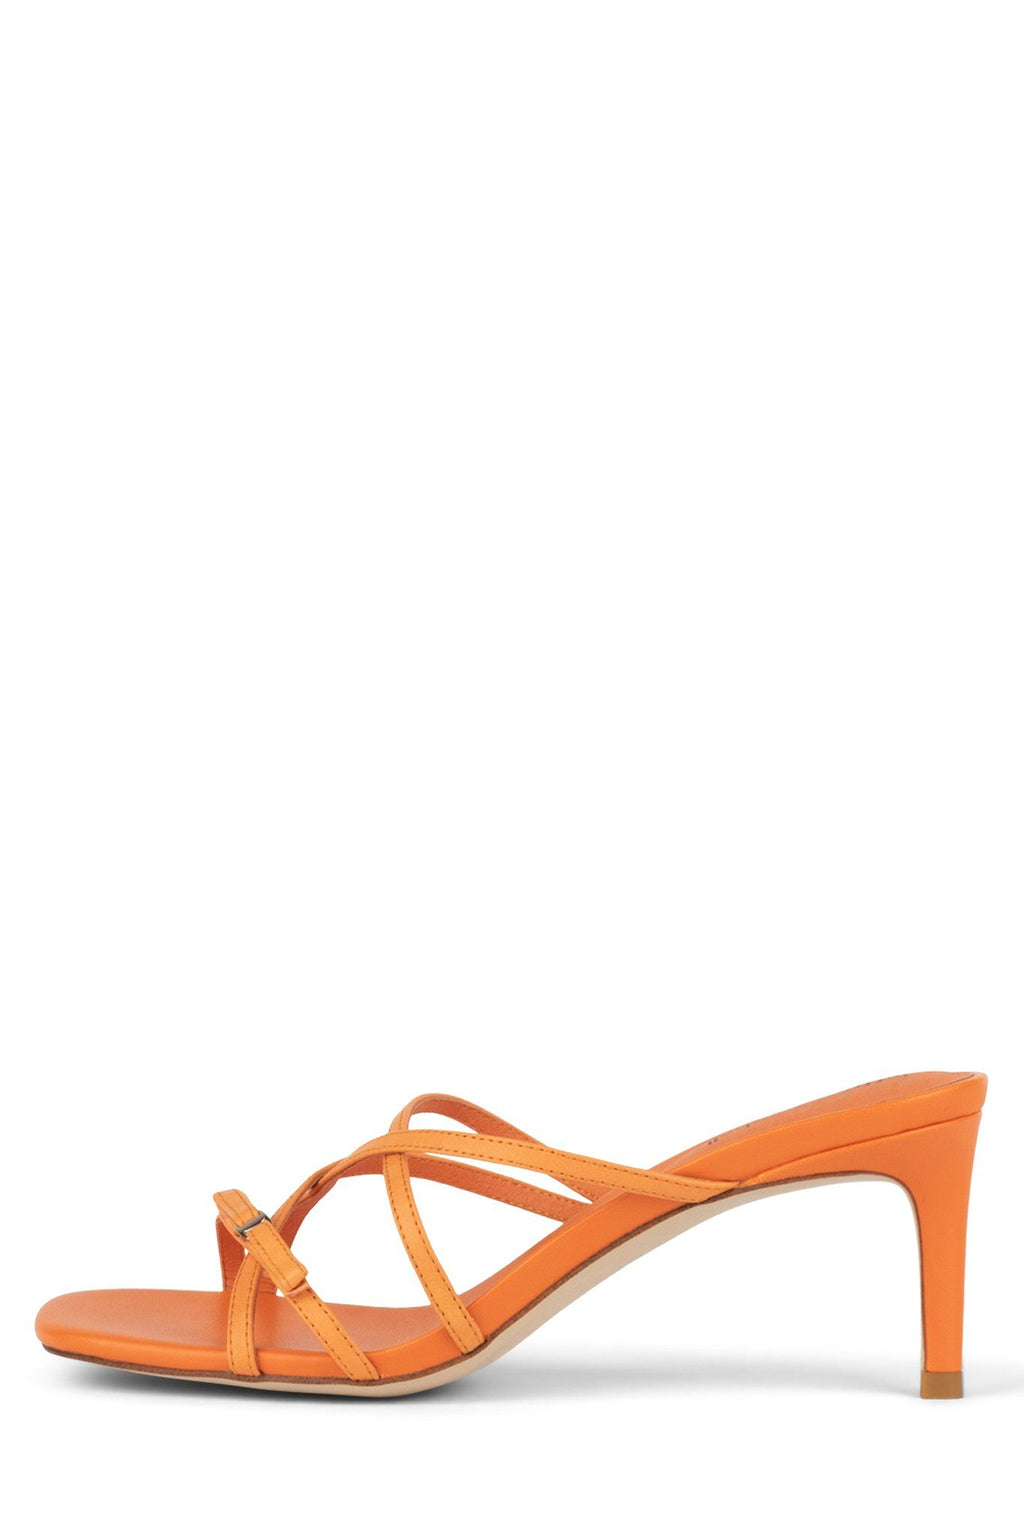 CATIA Heeled Sandal STRATEGY Orange 6